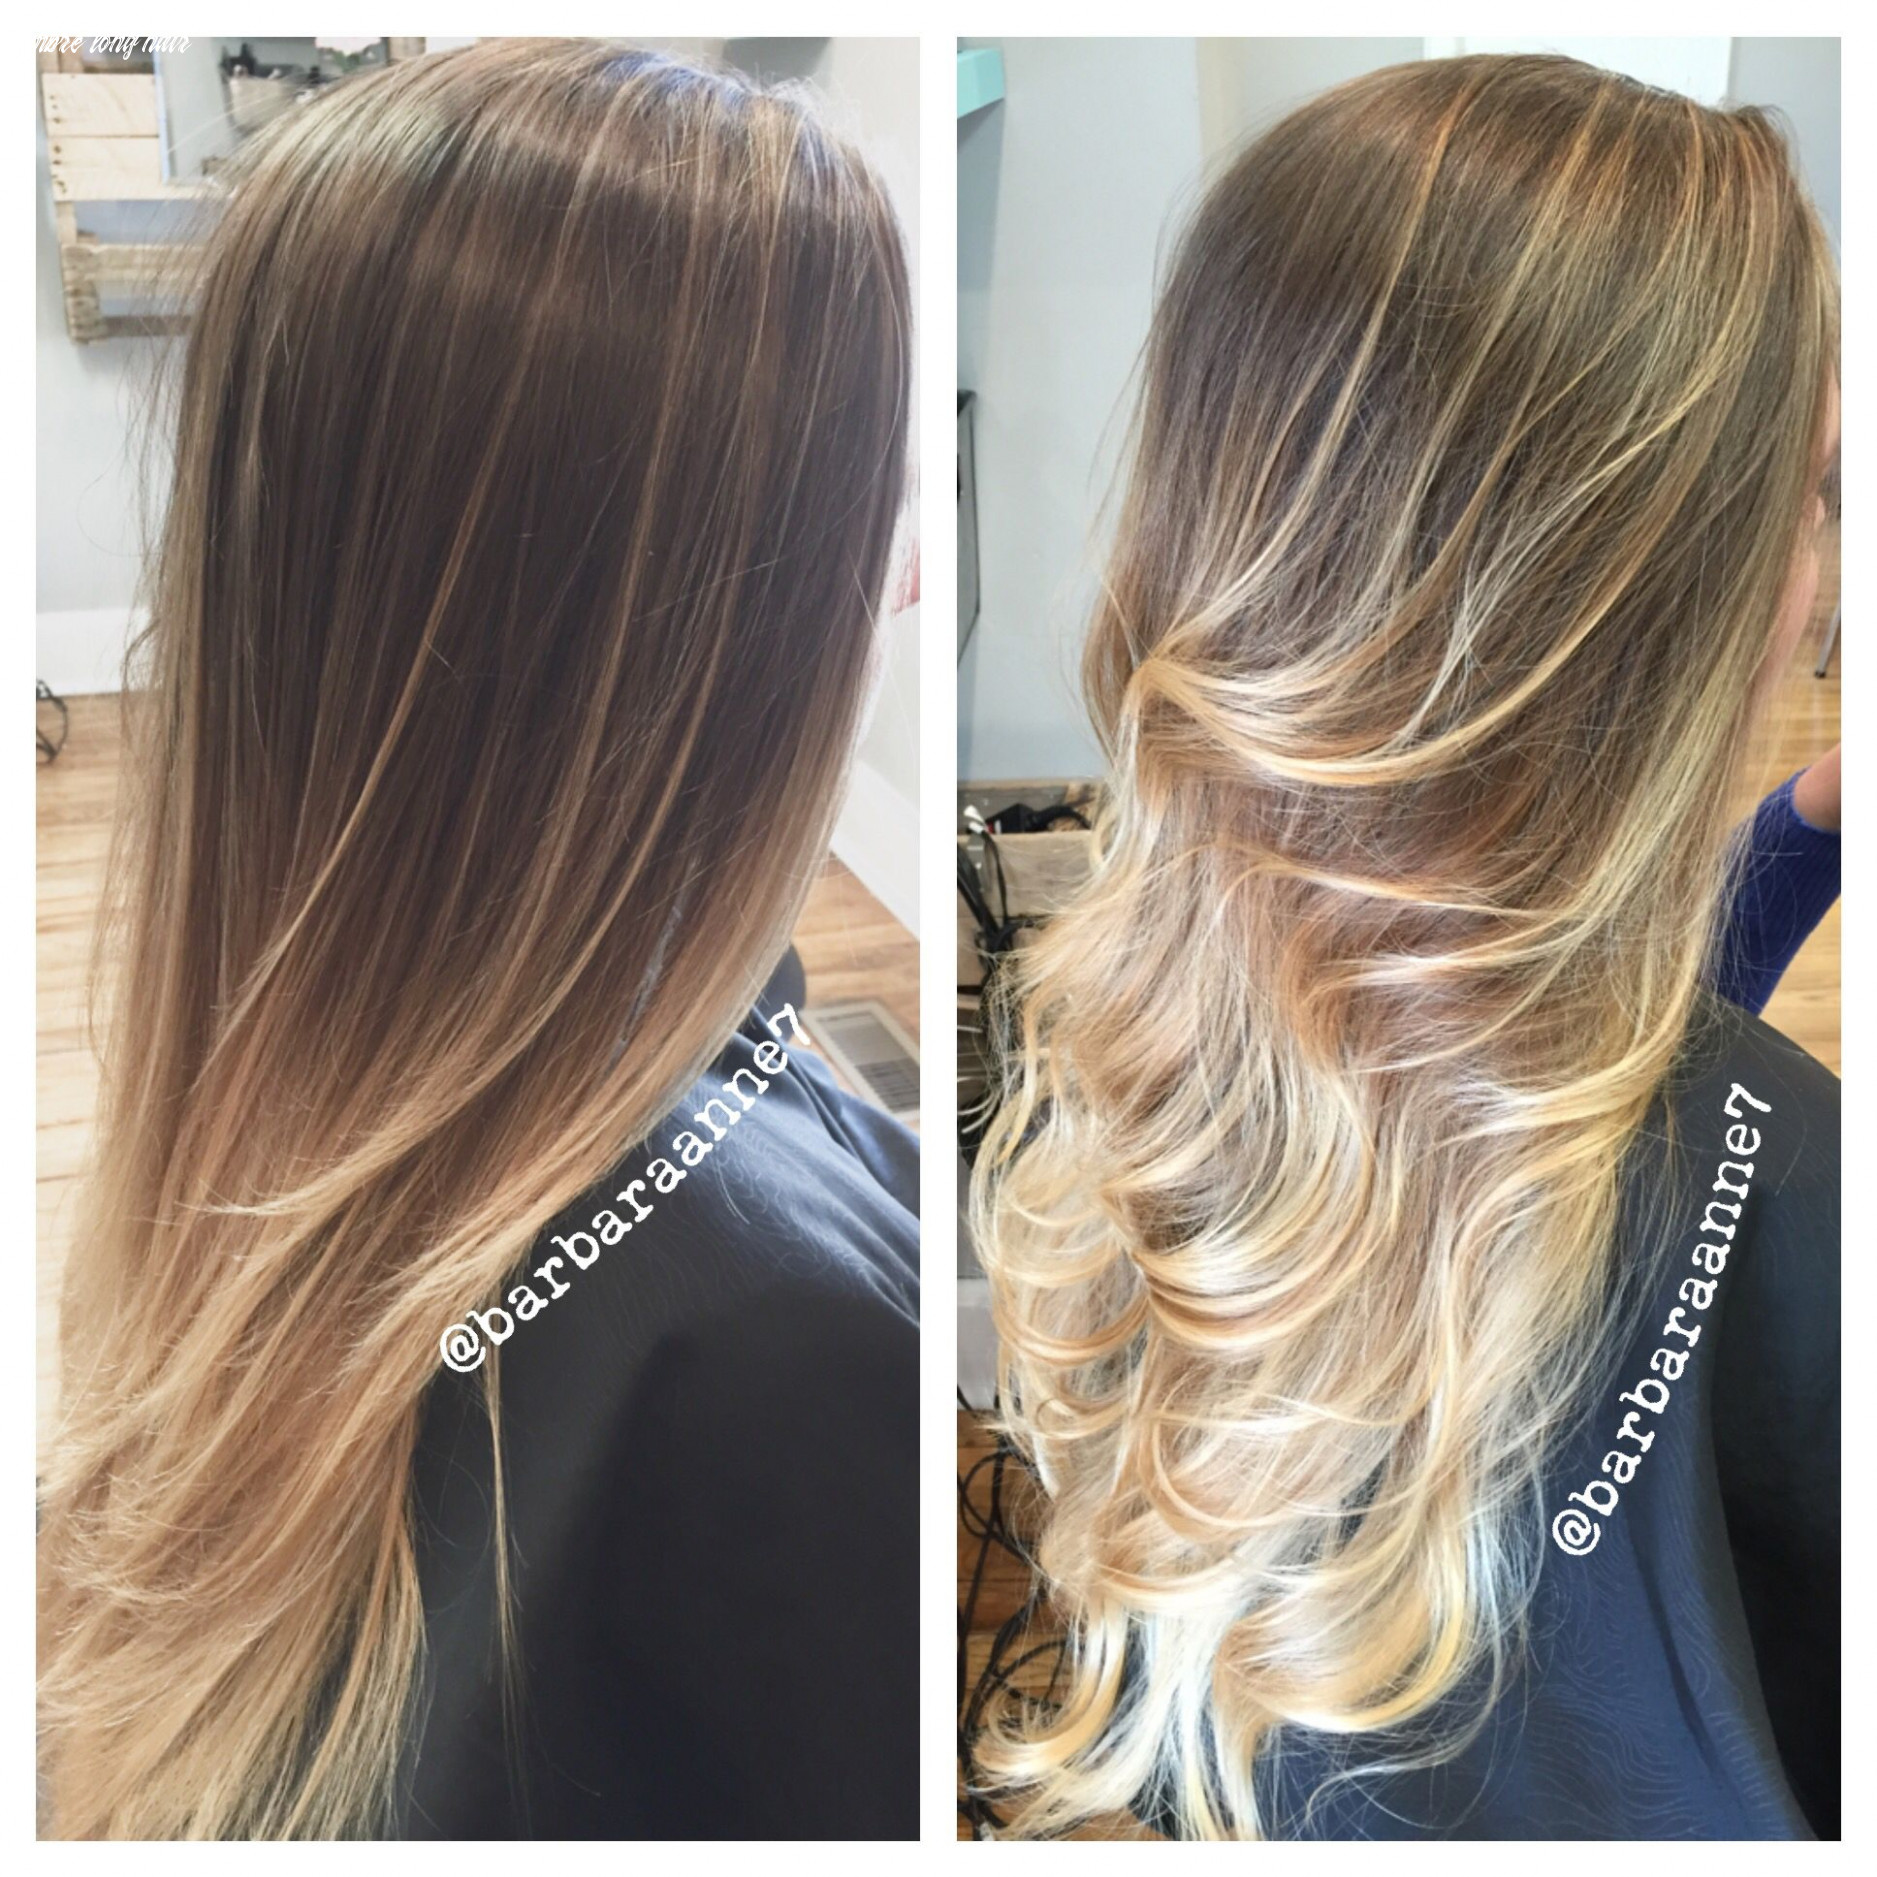 Balayage ombré, straight & curled, long hair, blonde hair